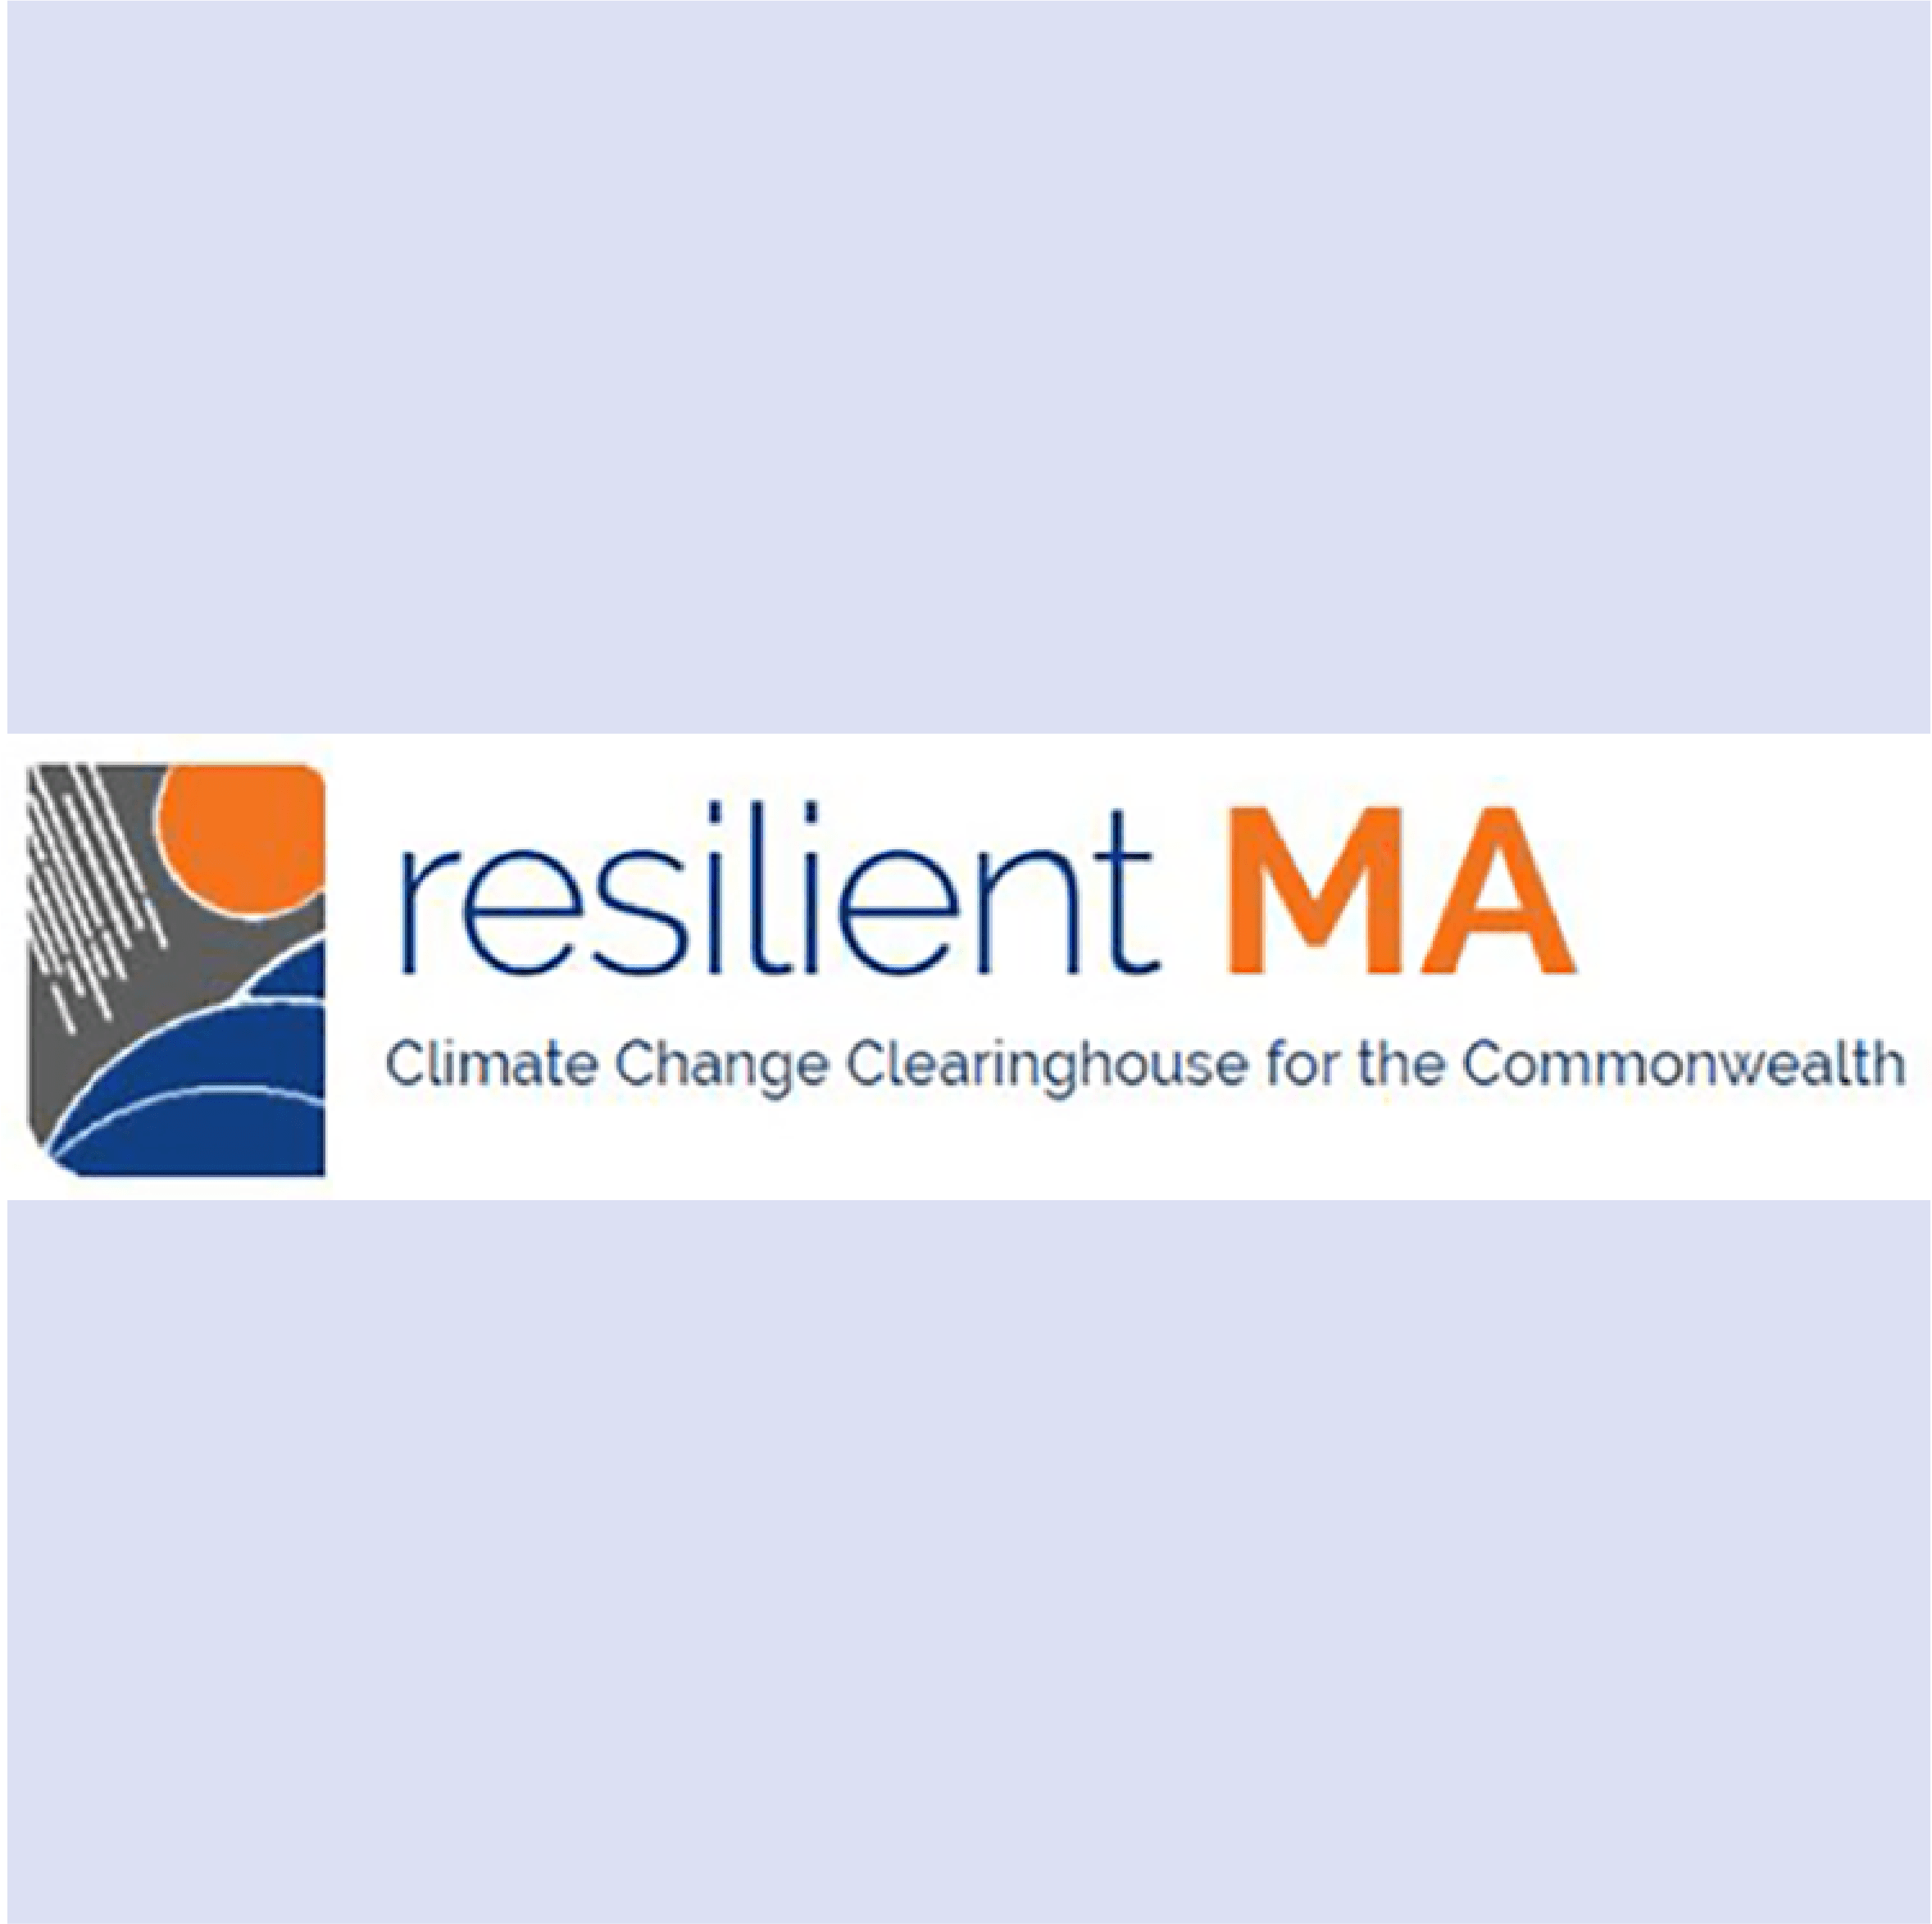 Resilient MA